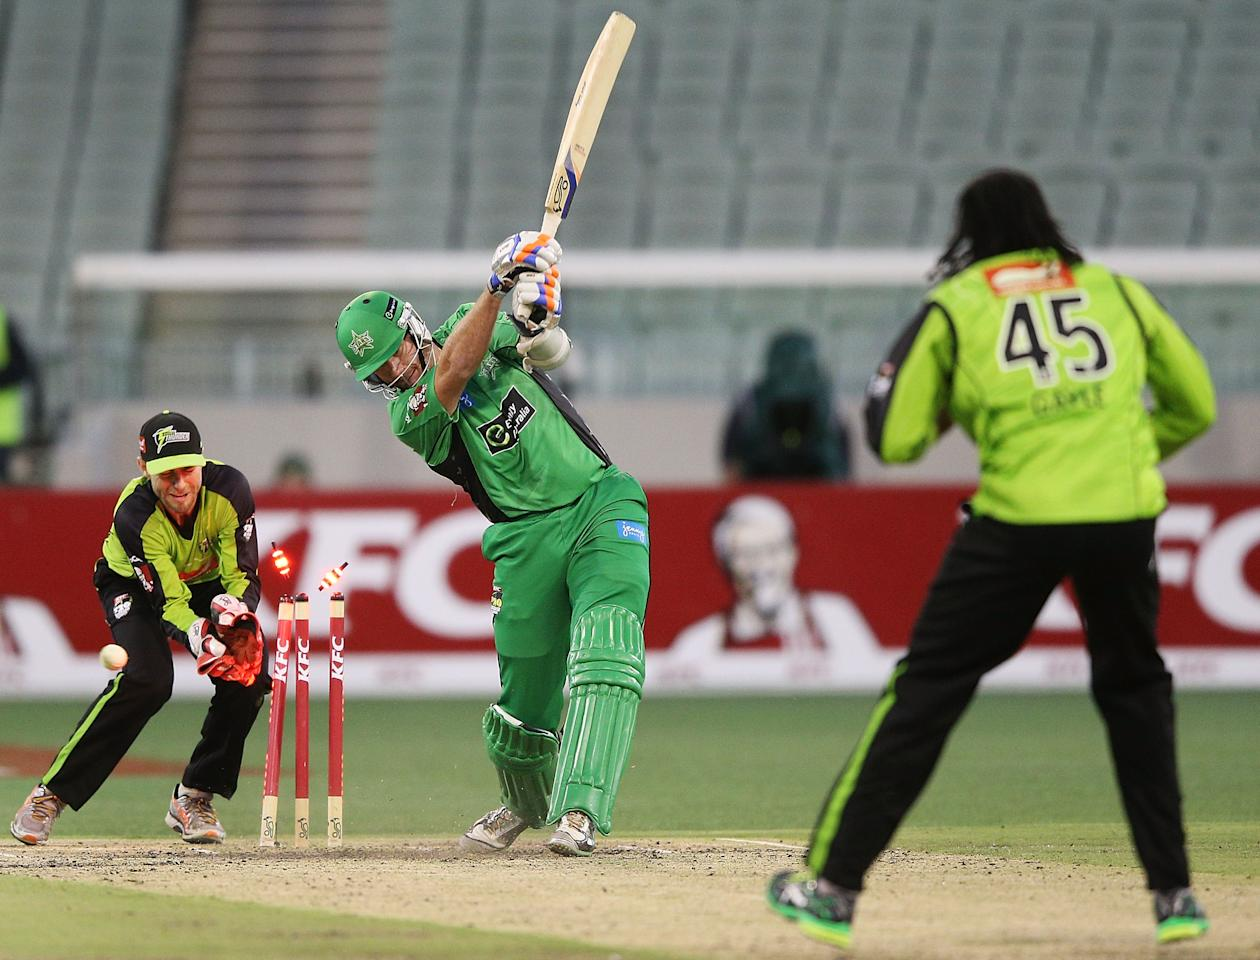 MELBOURNE, AUSTRALIA - JANUARY 08:  John Hastings of the Melbourne Stars gets bowled by Chris Gayle of the Sydney Thunder during the Big Bash League match between the Melbourne Stars and the Sydney Thunder at Melbourne Cricket Ground on January 8, 2013 in Melbourne, Australia.  (Photo by Michael Dodge/Getty Images)